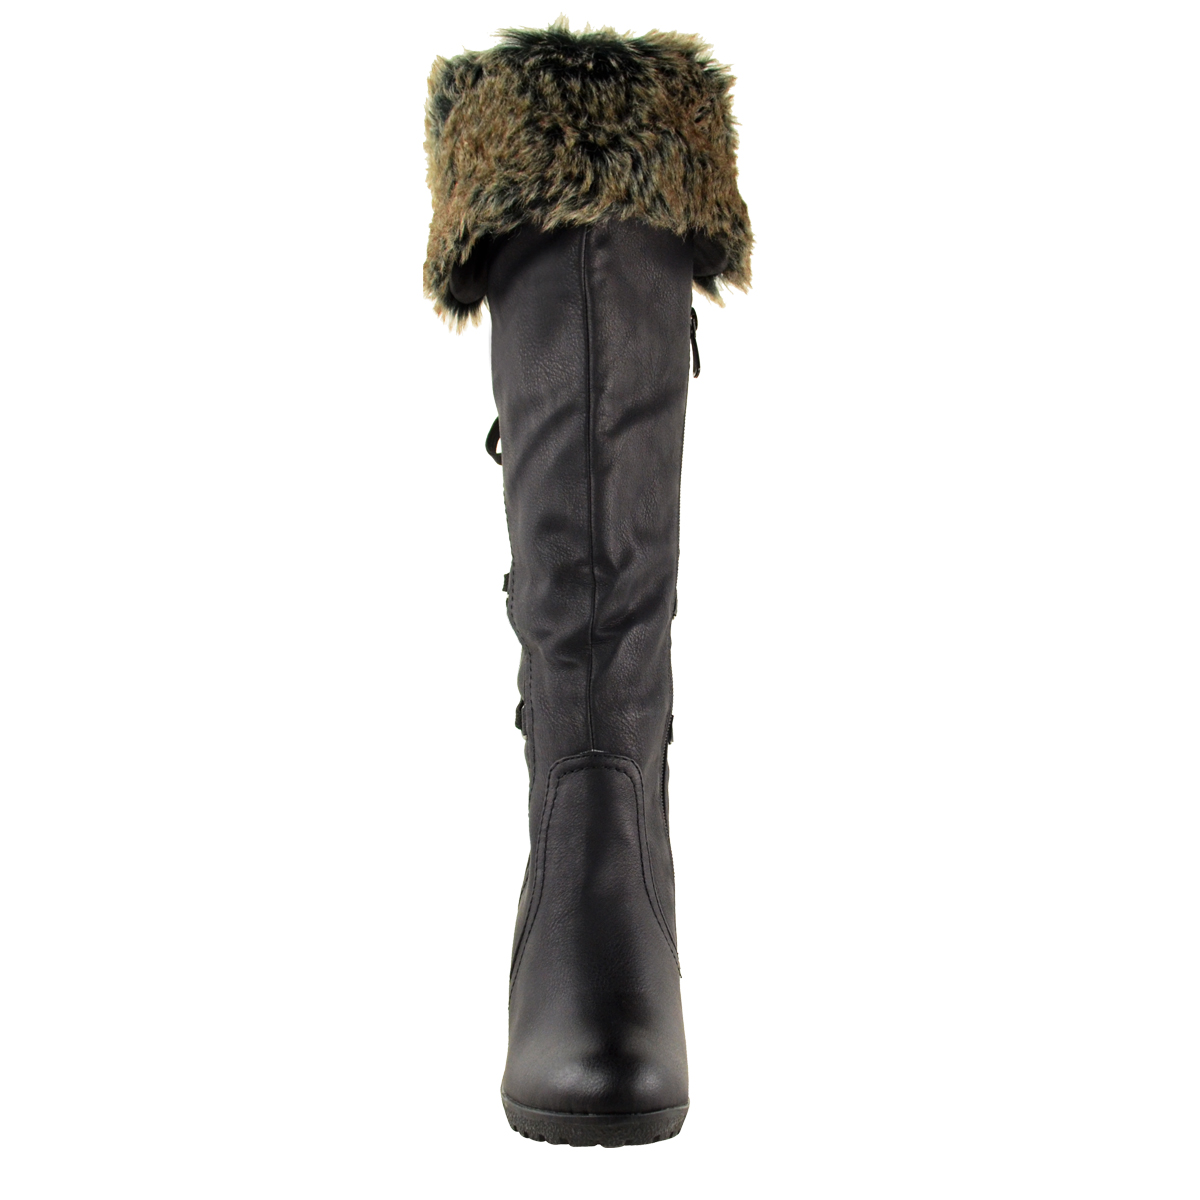 674fa24e5c8 Details about WOMENS LADIES MID WEDGE HIGH HEEL FUR LINED WARM WINTER KNEE  CALF ZIP BOOTS SIZE